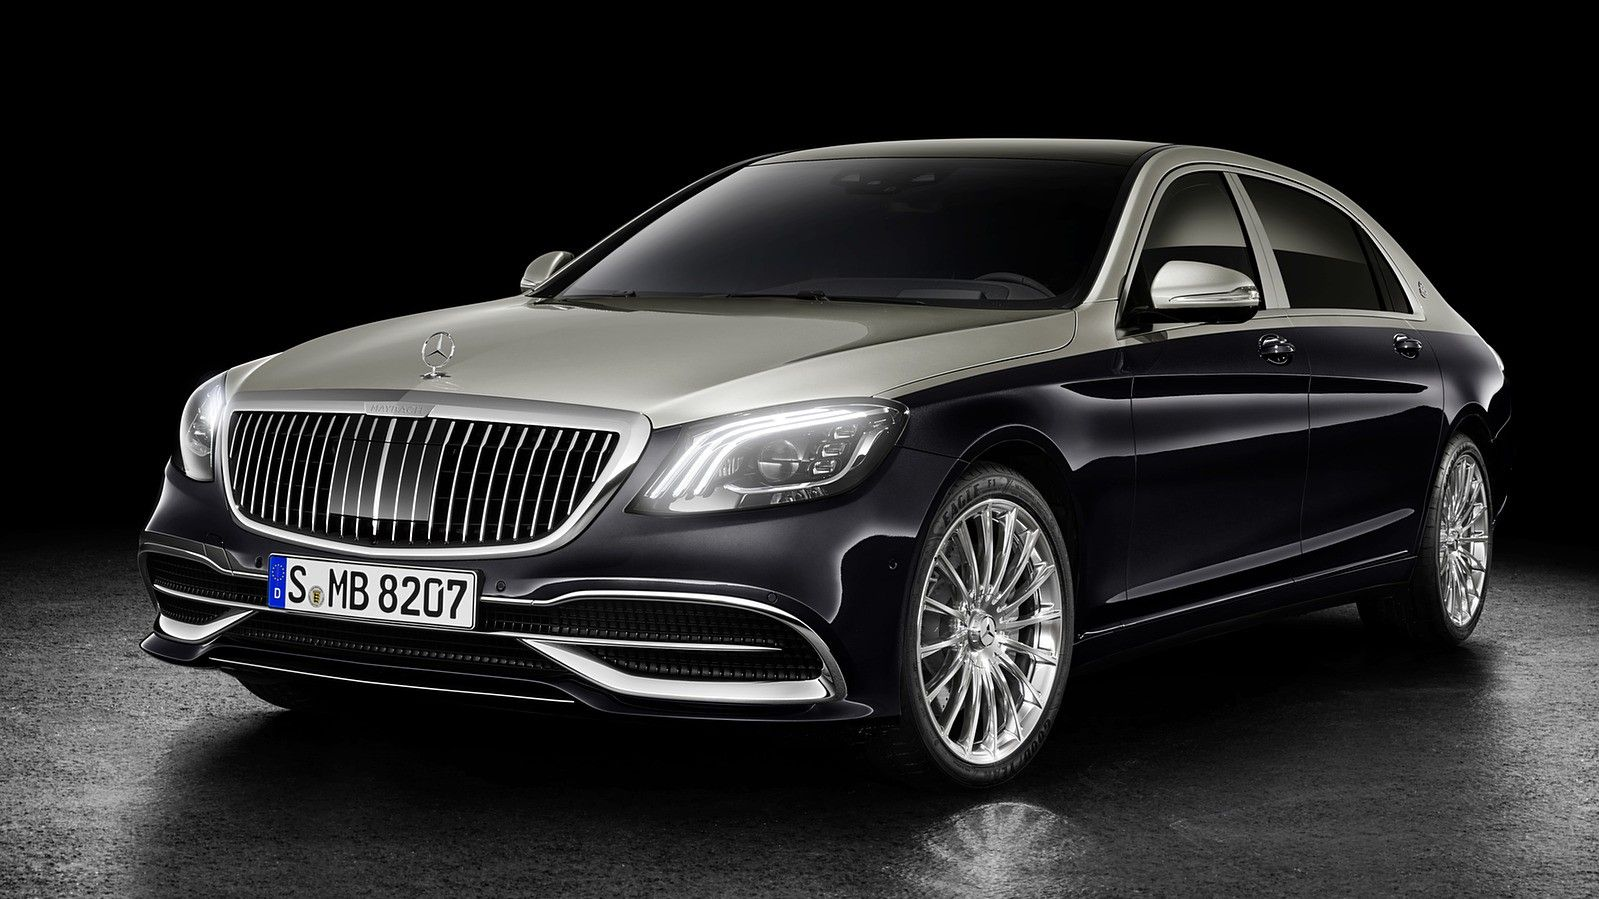 2020 Mercedes Maybach sedan front three quarters black and silver